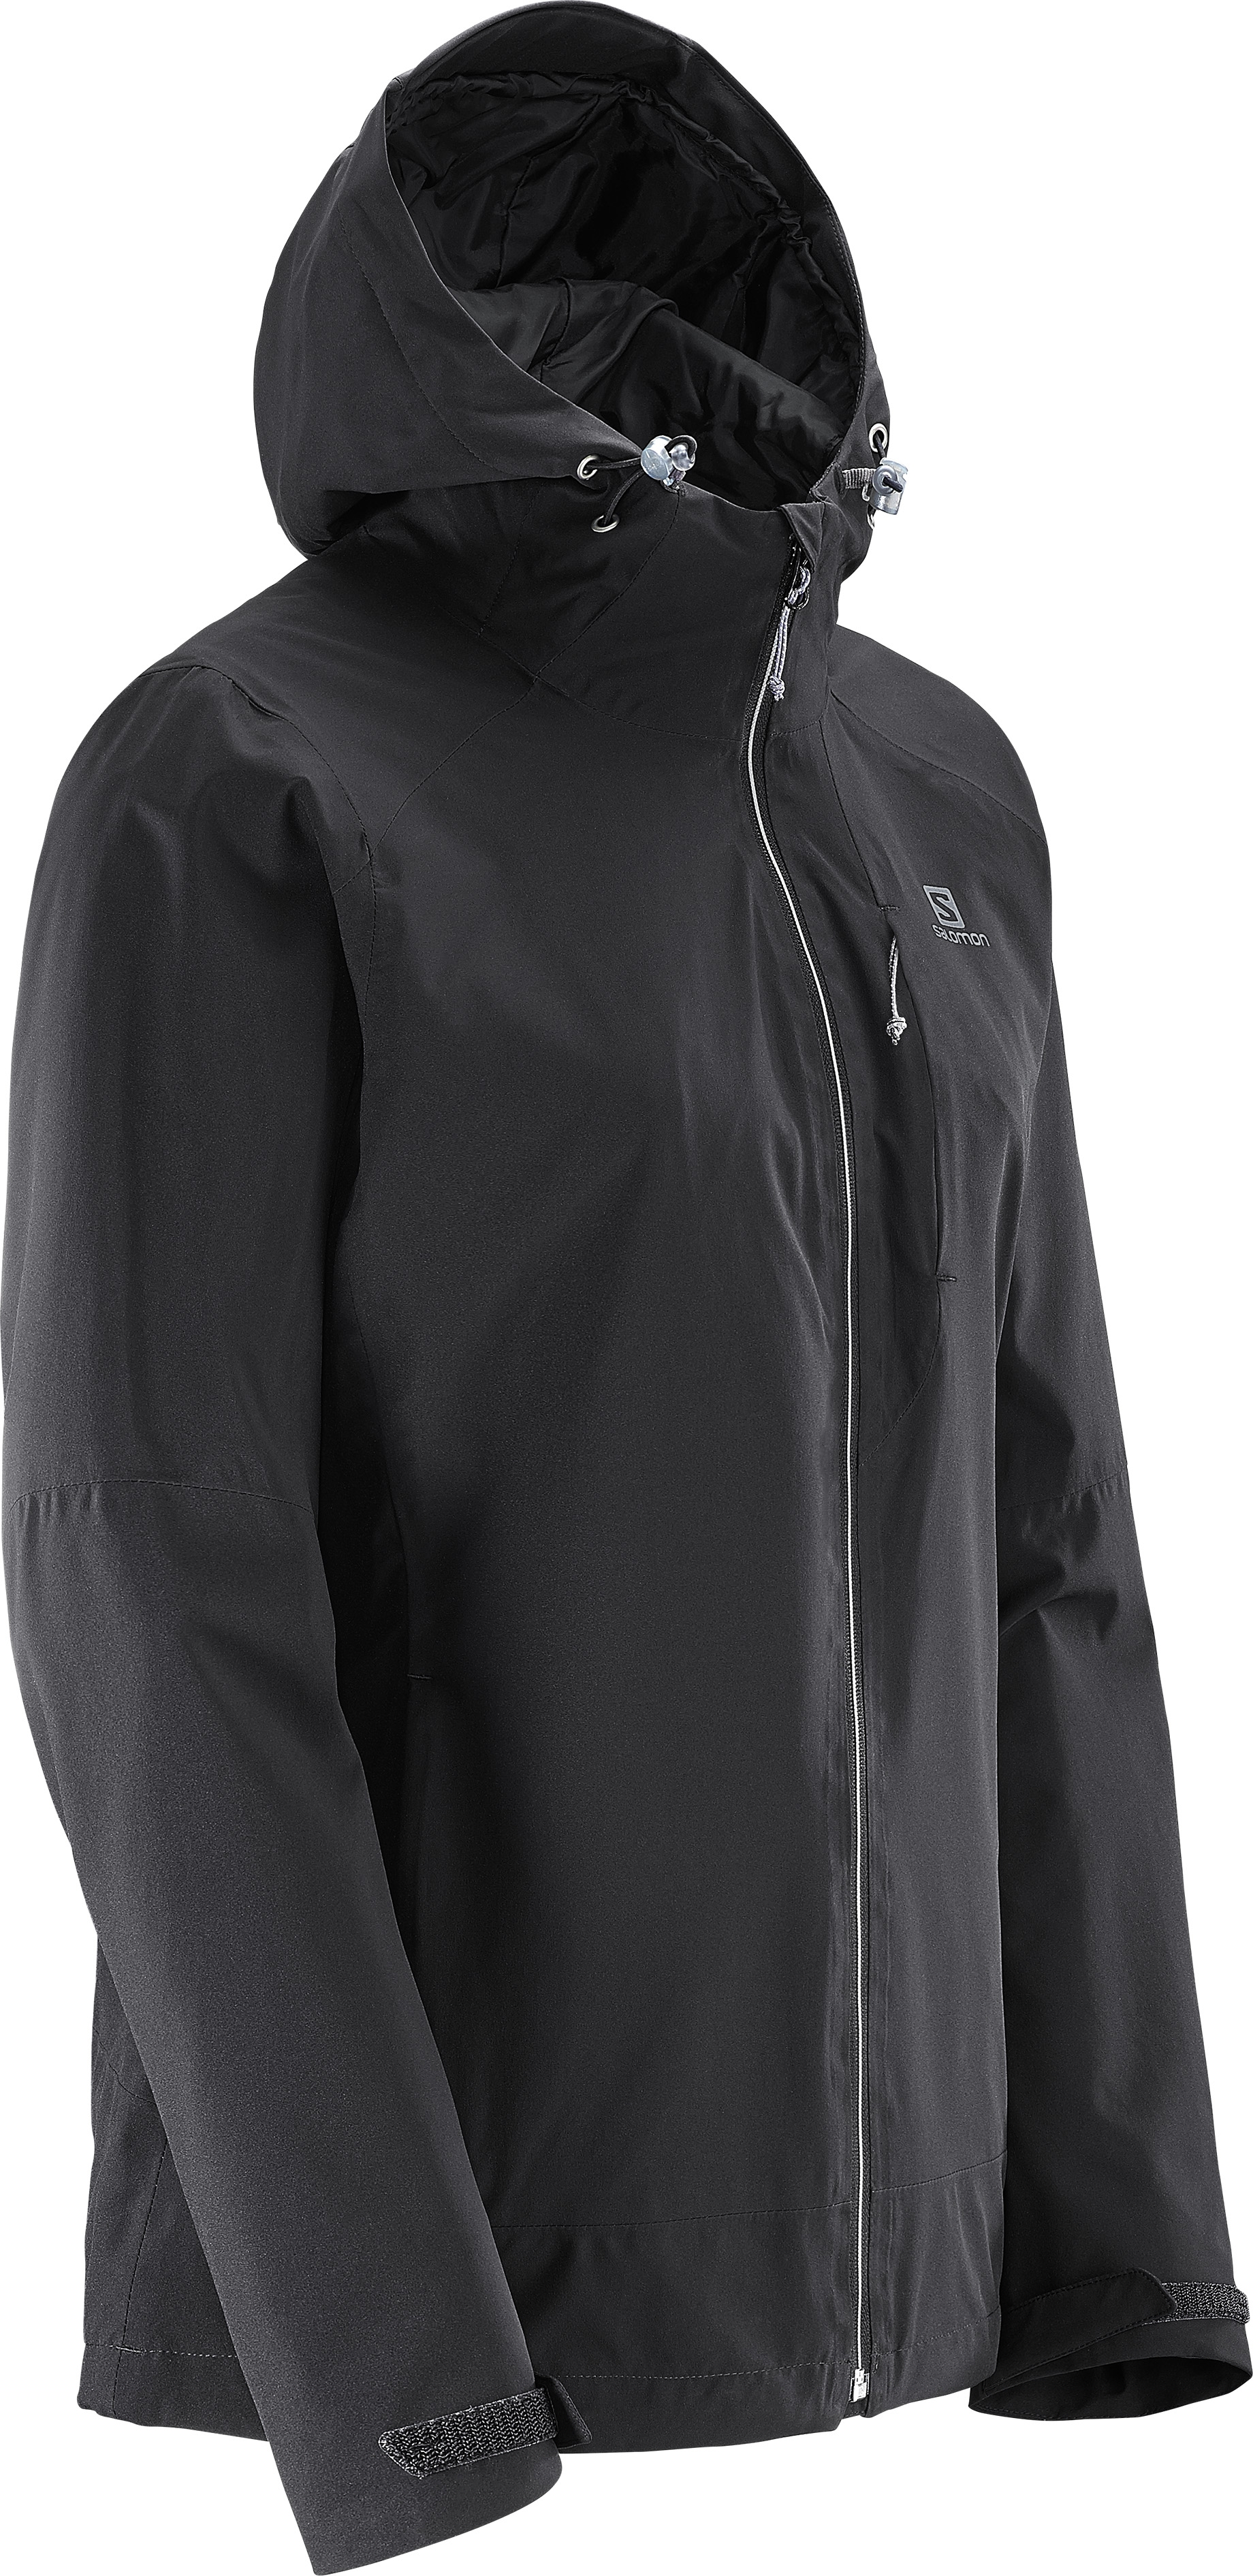 Camping & Outdoor Veste Salomon La Cote 2l Jkt M Black Forged Iron